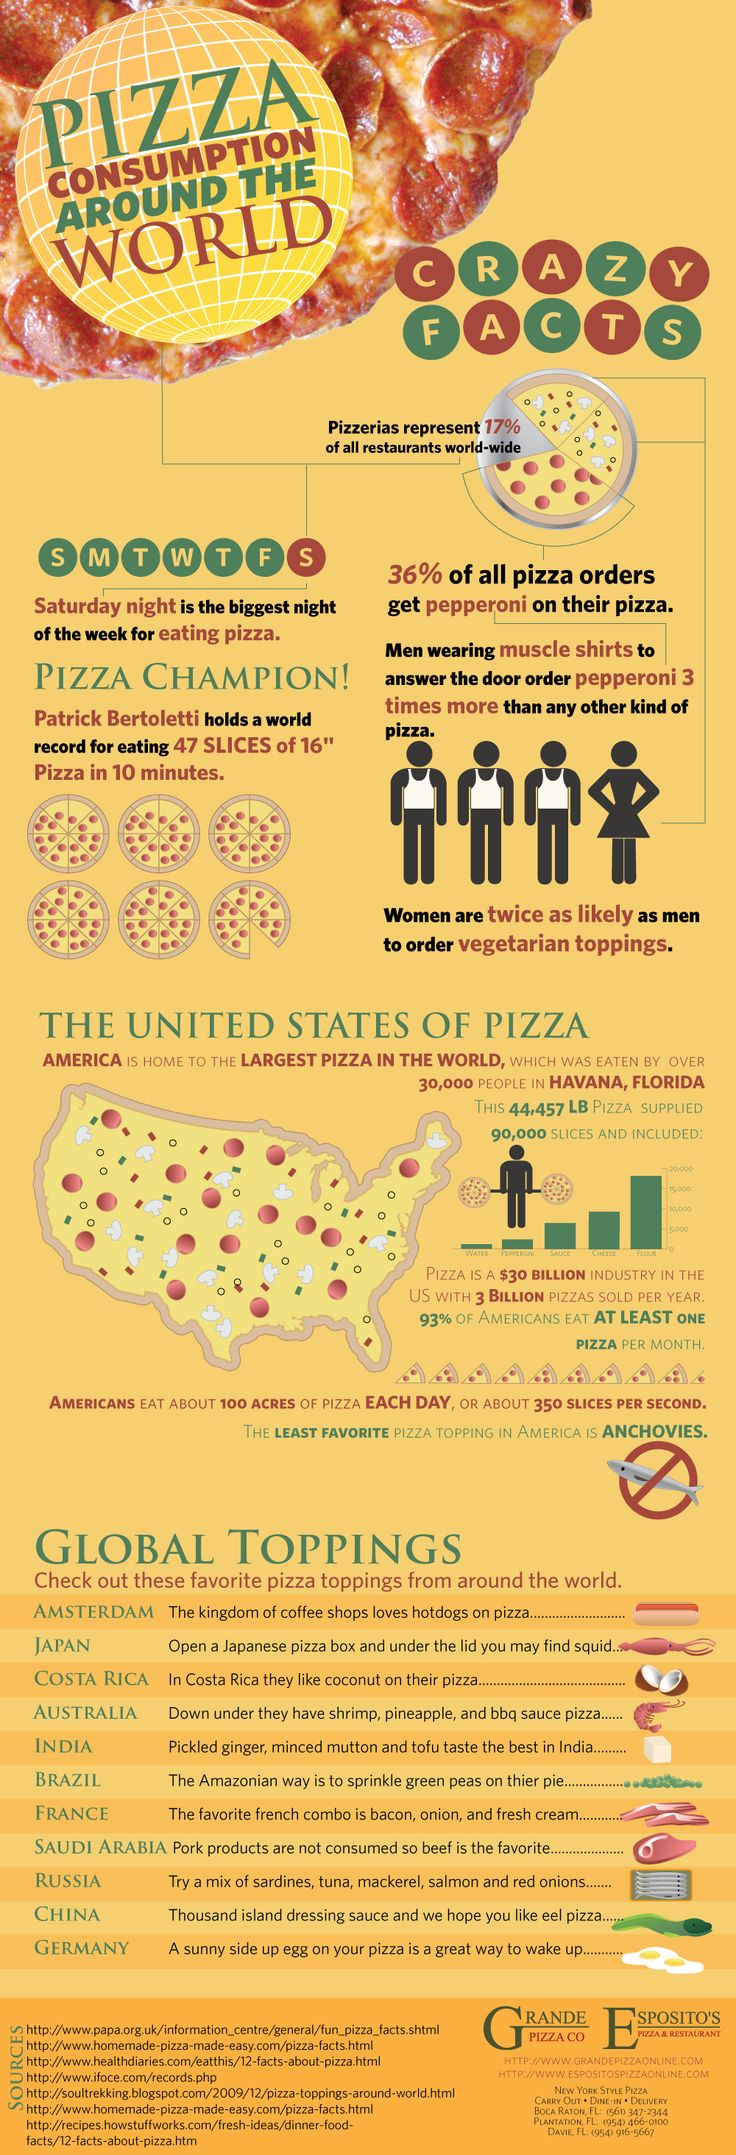 Interesting Infographic from Esposito's Pizza